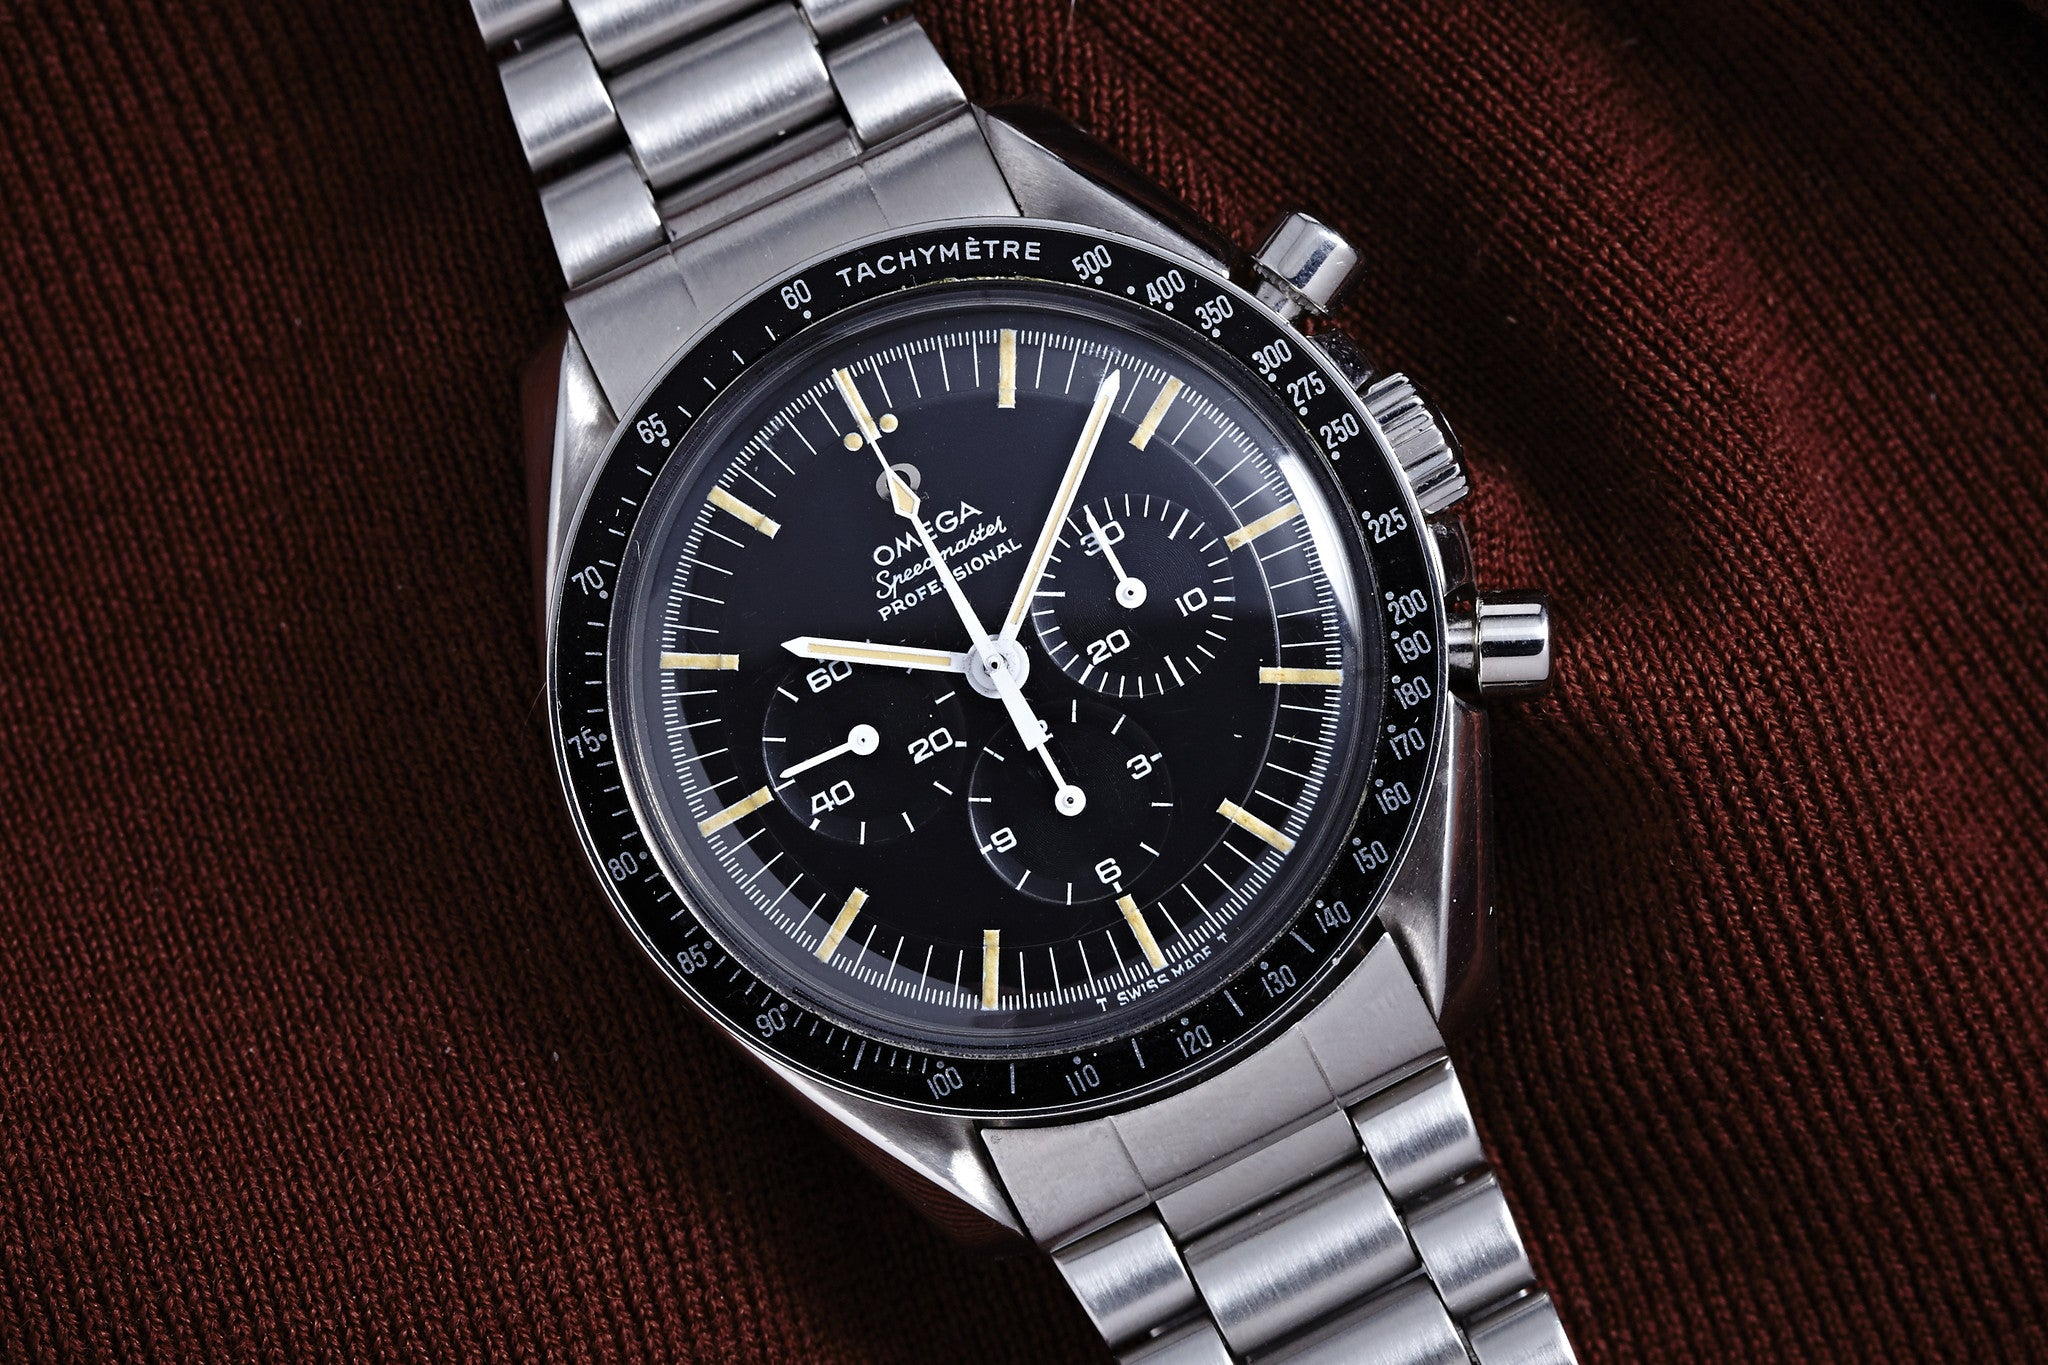 Omega Speedmaster Professional Transitional Dial -1968